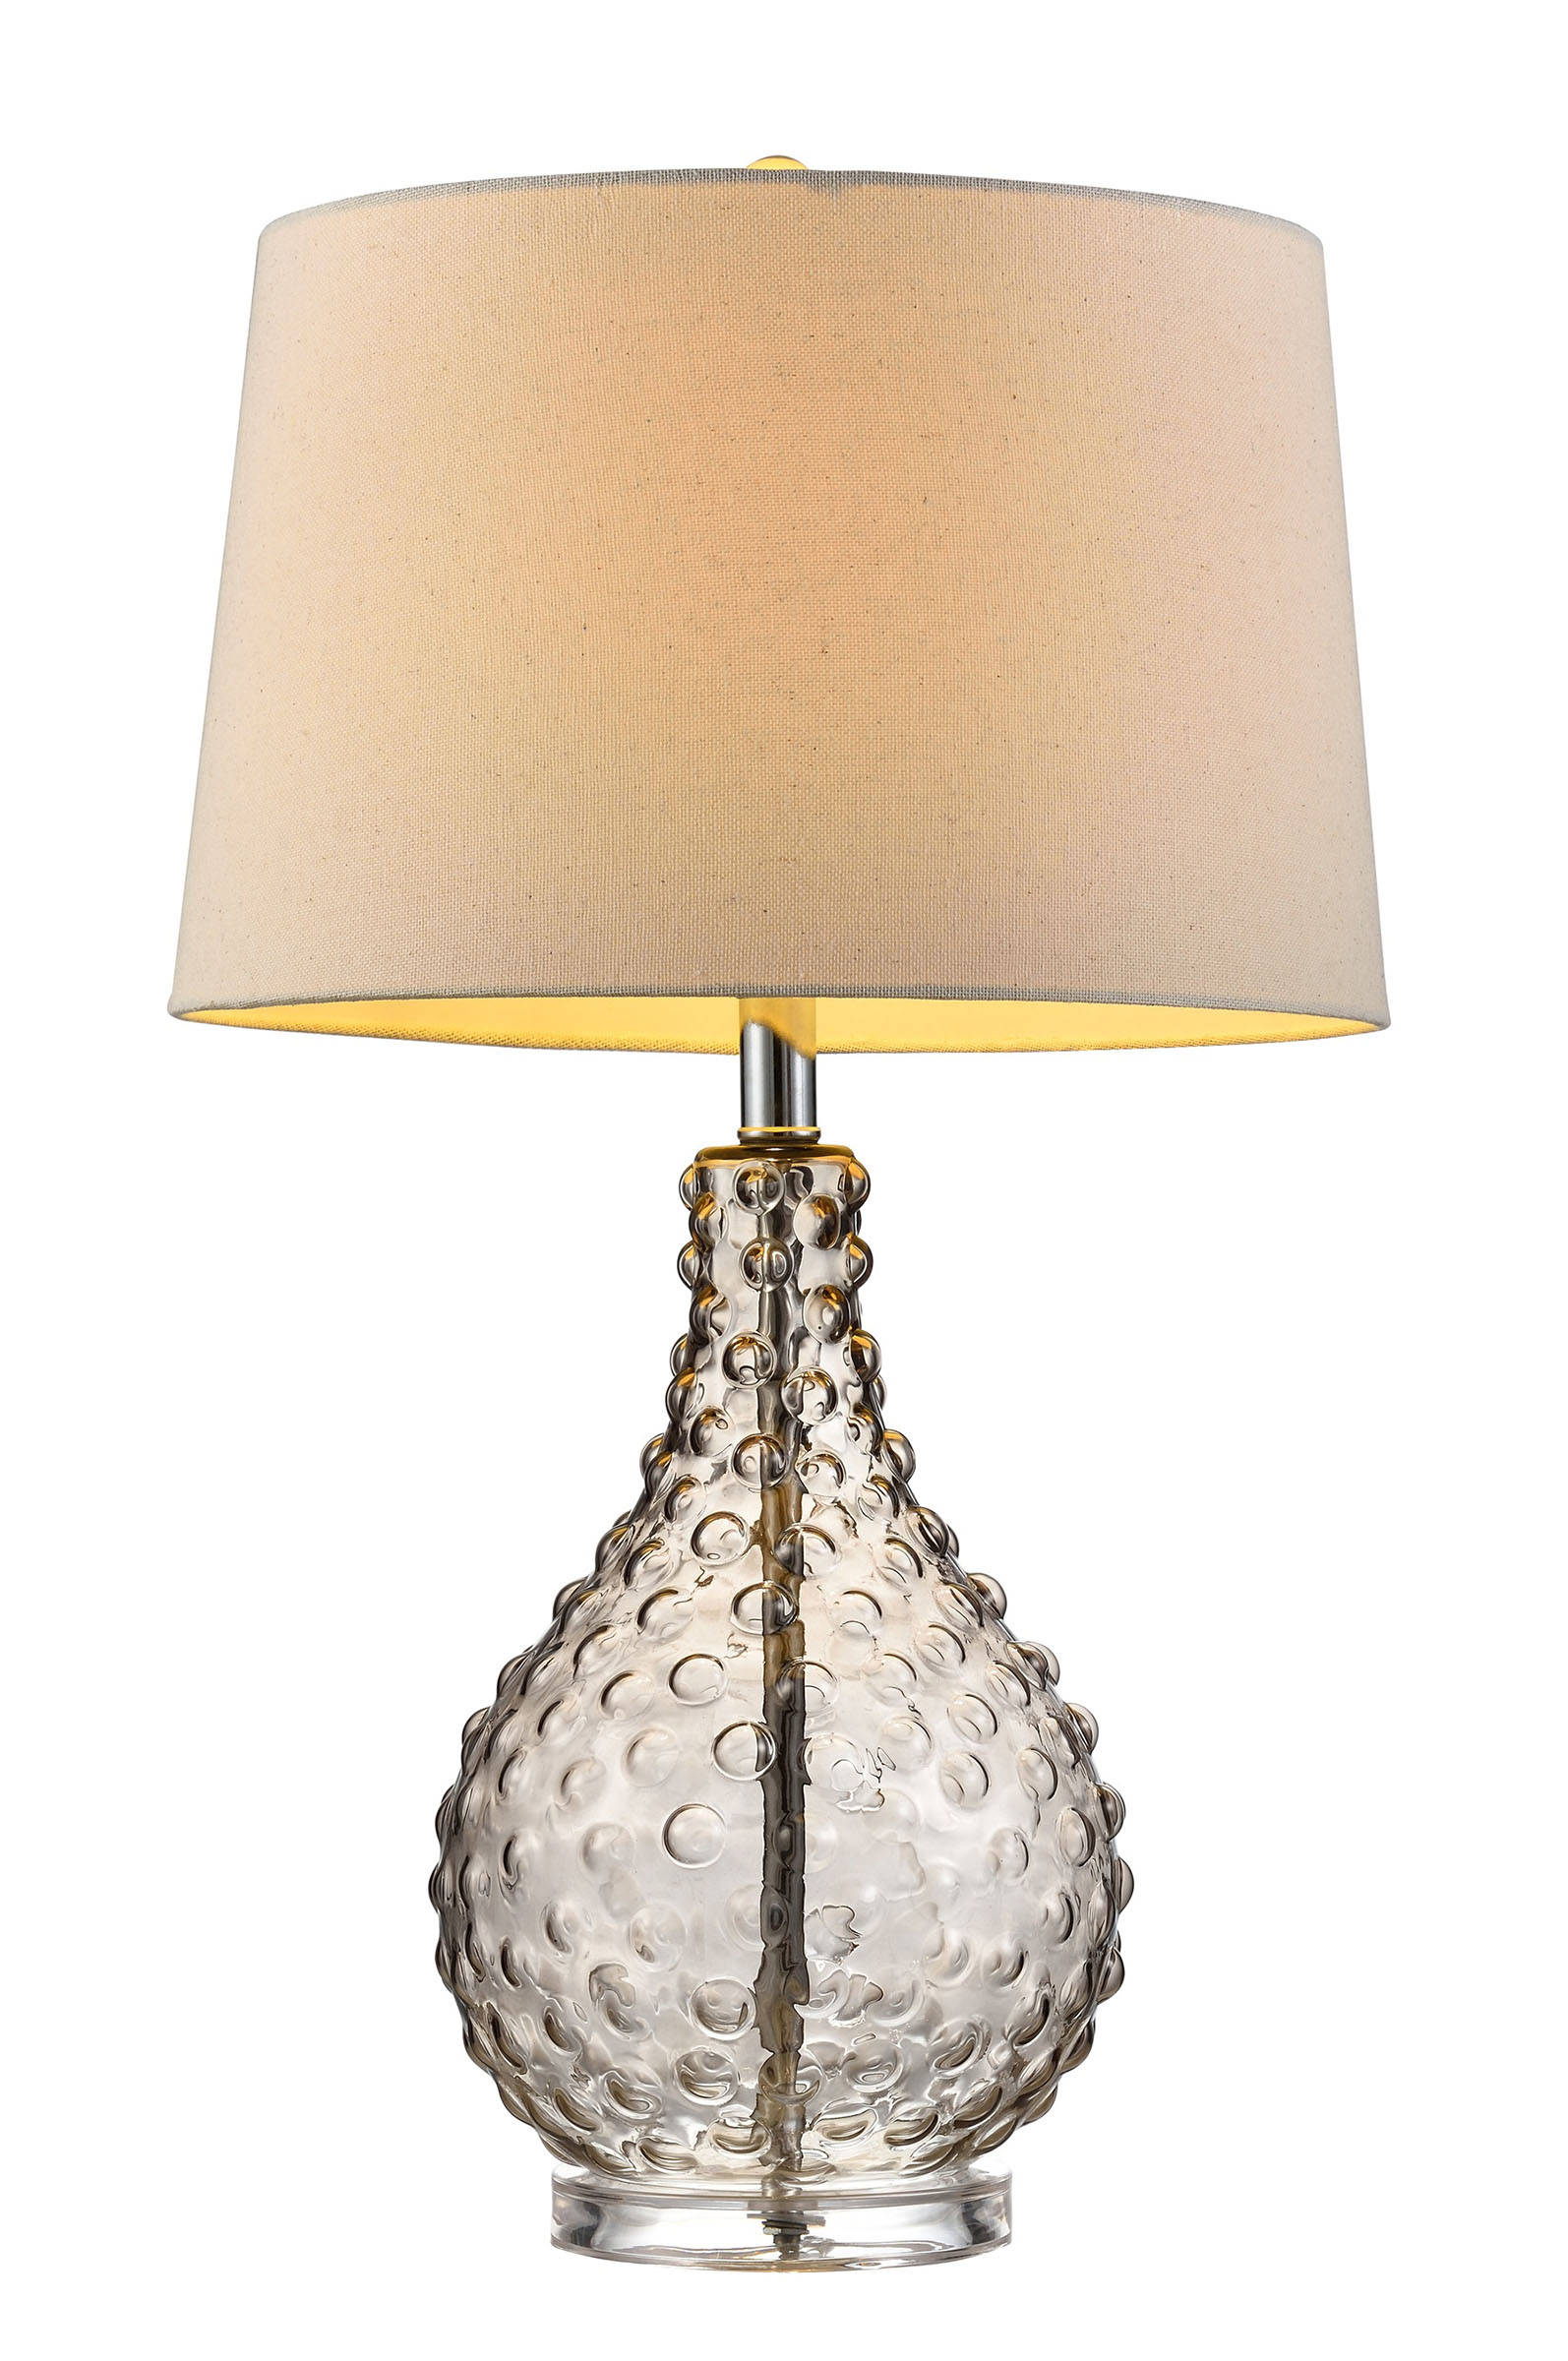 Furniture Of America Gia 27 Inch Table Lamp The Classy Home